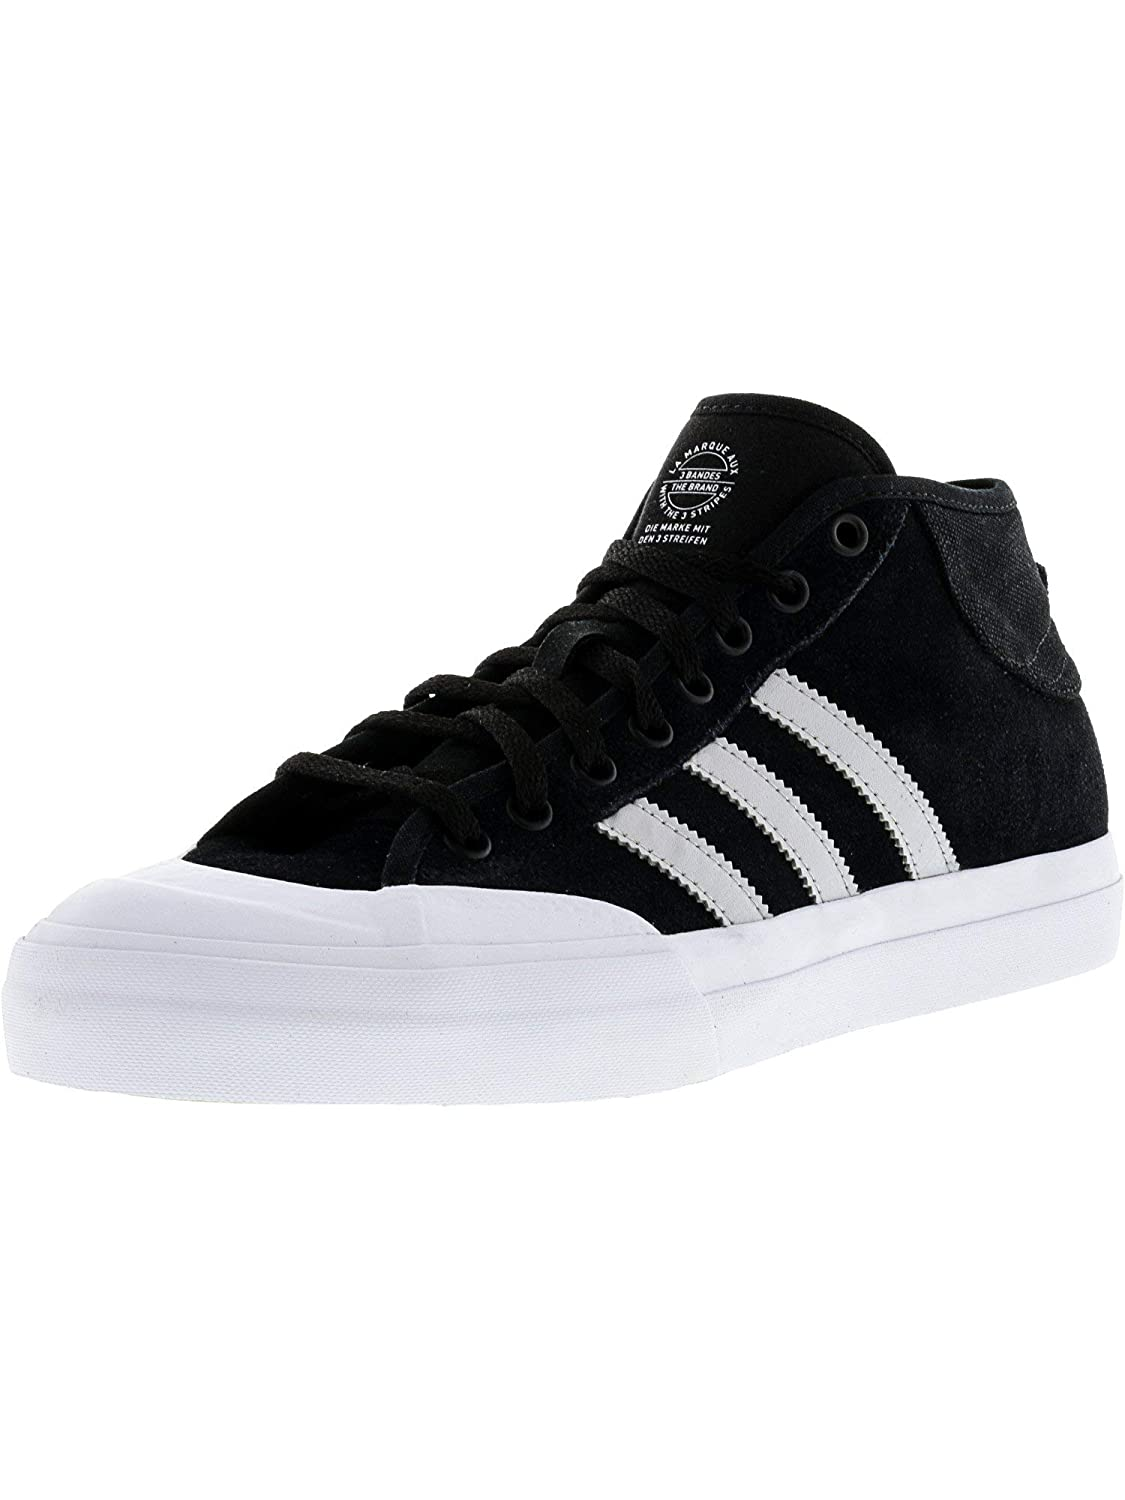 purchase cheap 59ad3 e8201 Amazon.com  Adidas Mens Matchcourt Mid Adv  Fashion Sneakers